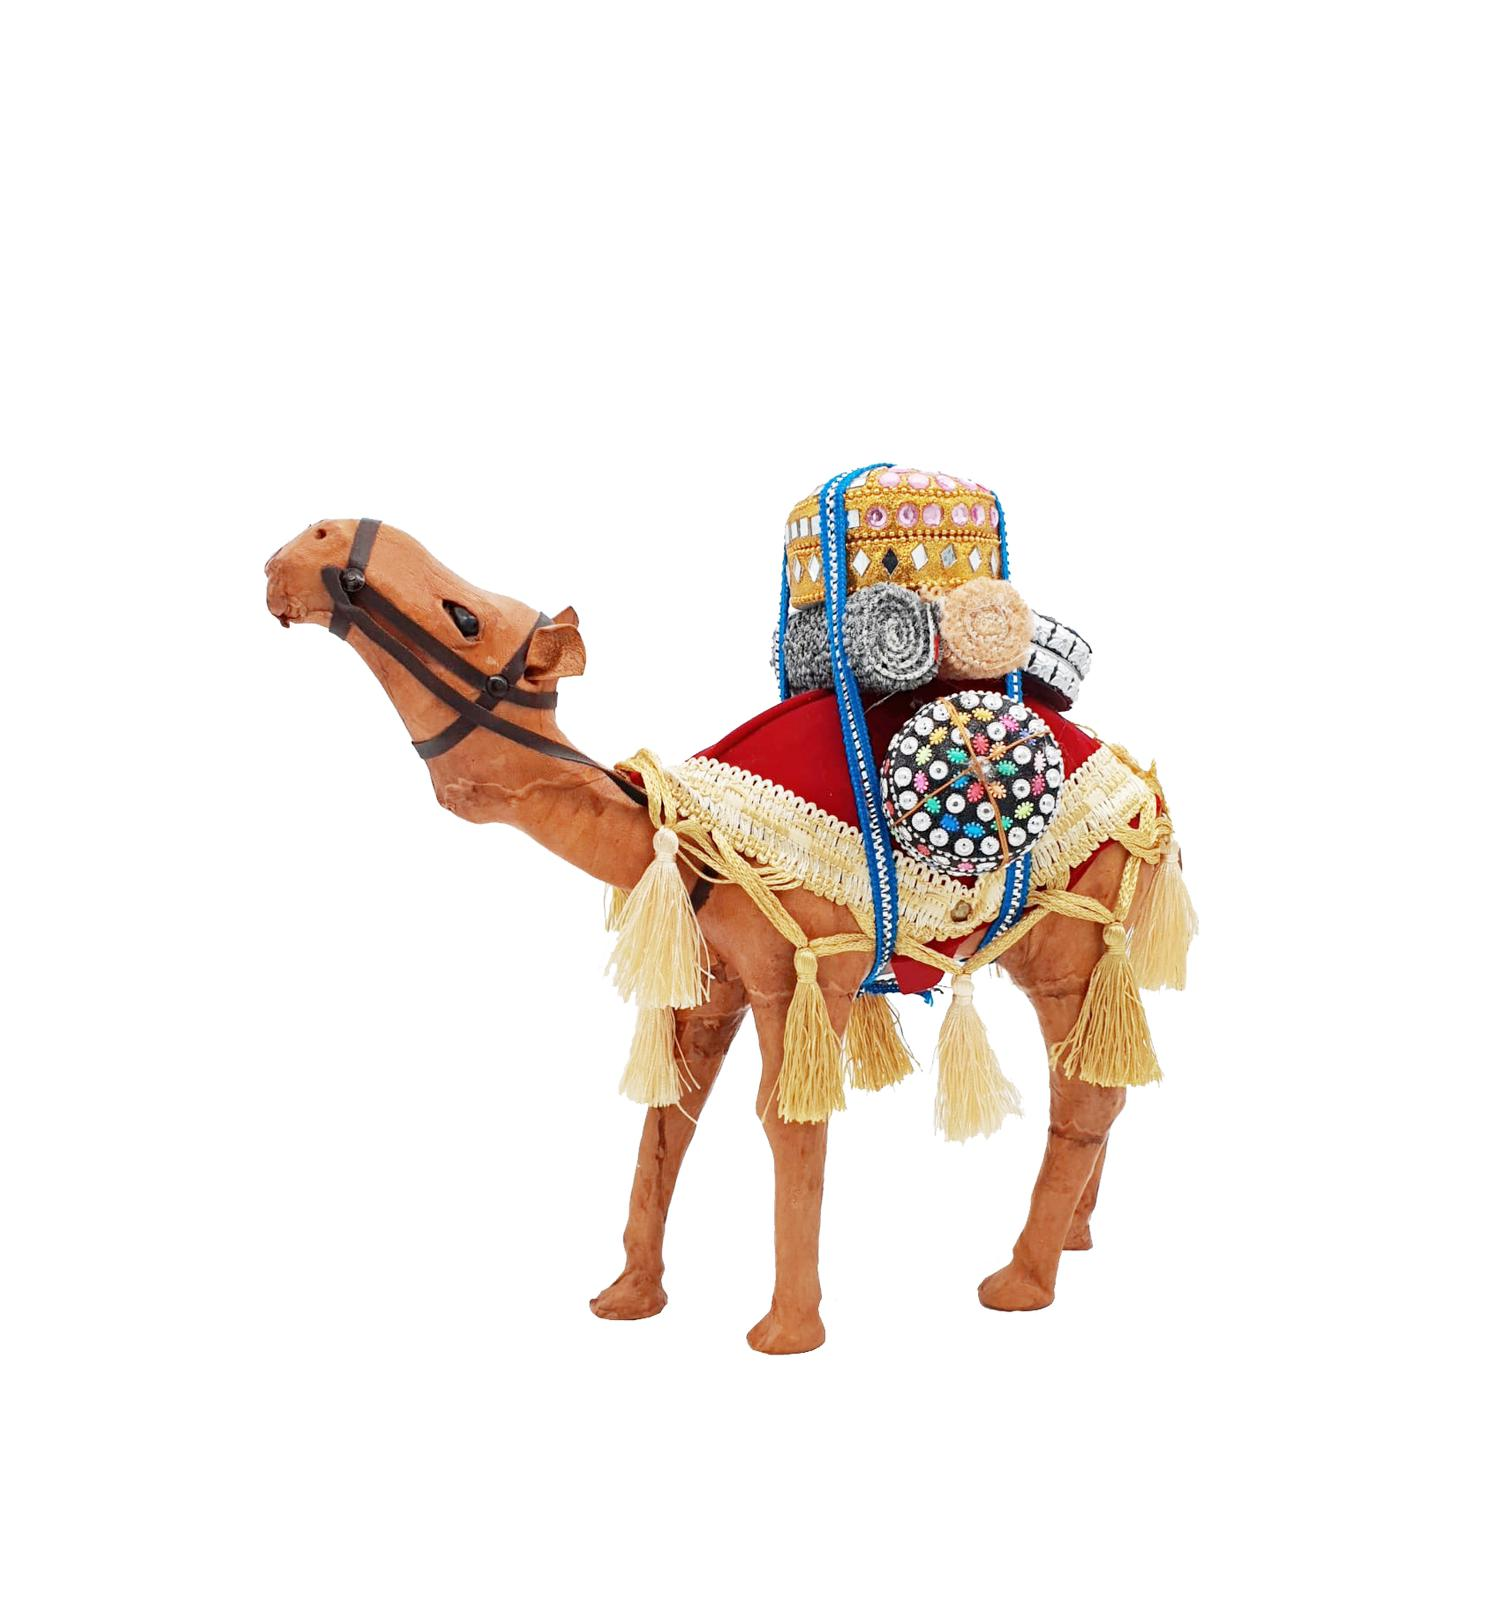 Buy Camel with Supplies Handmade - 29cm